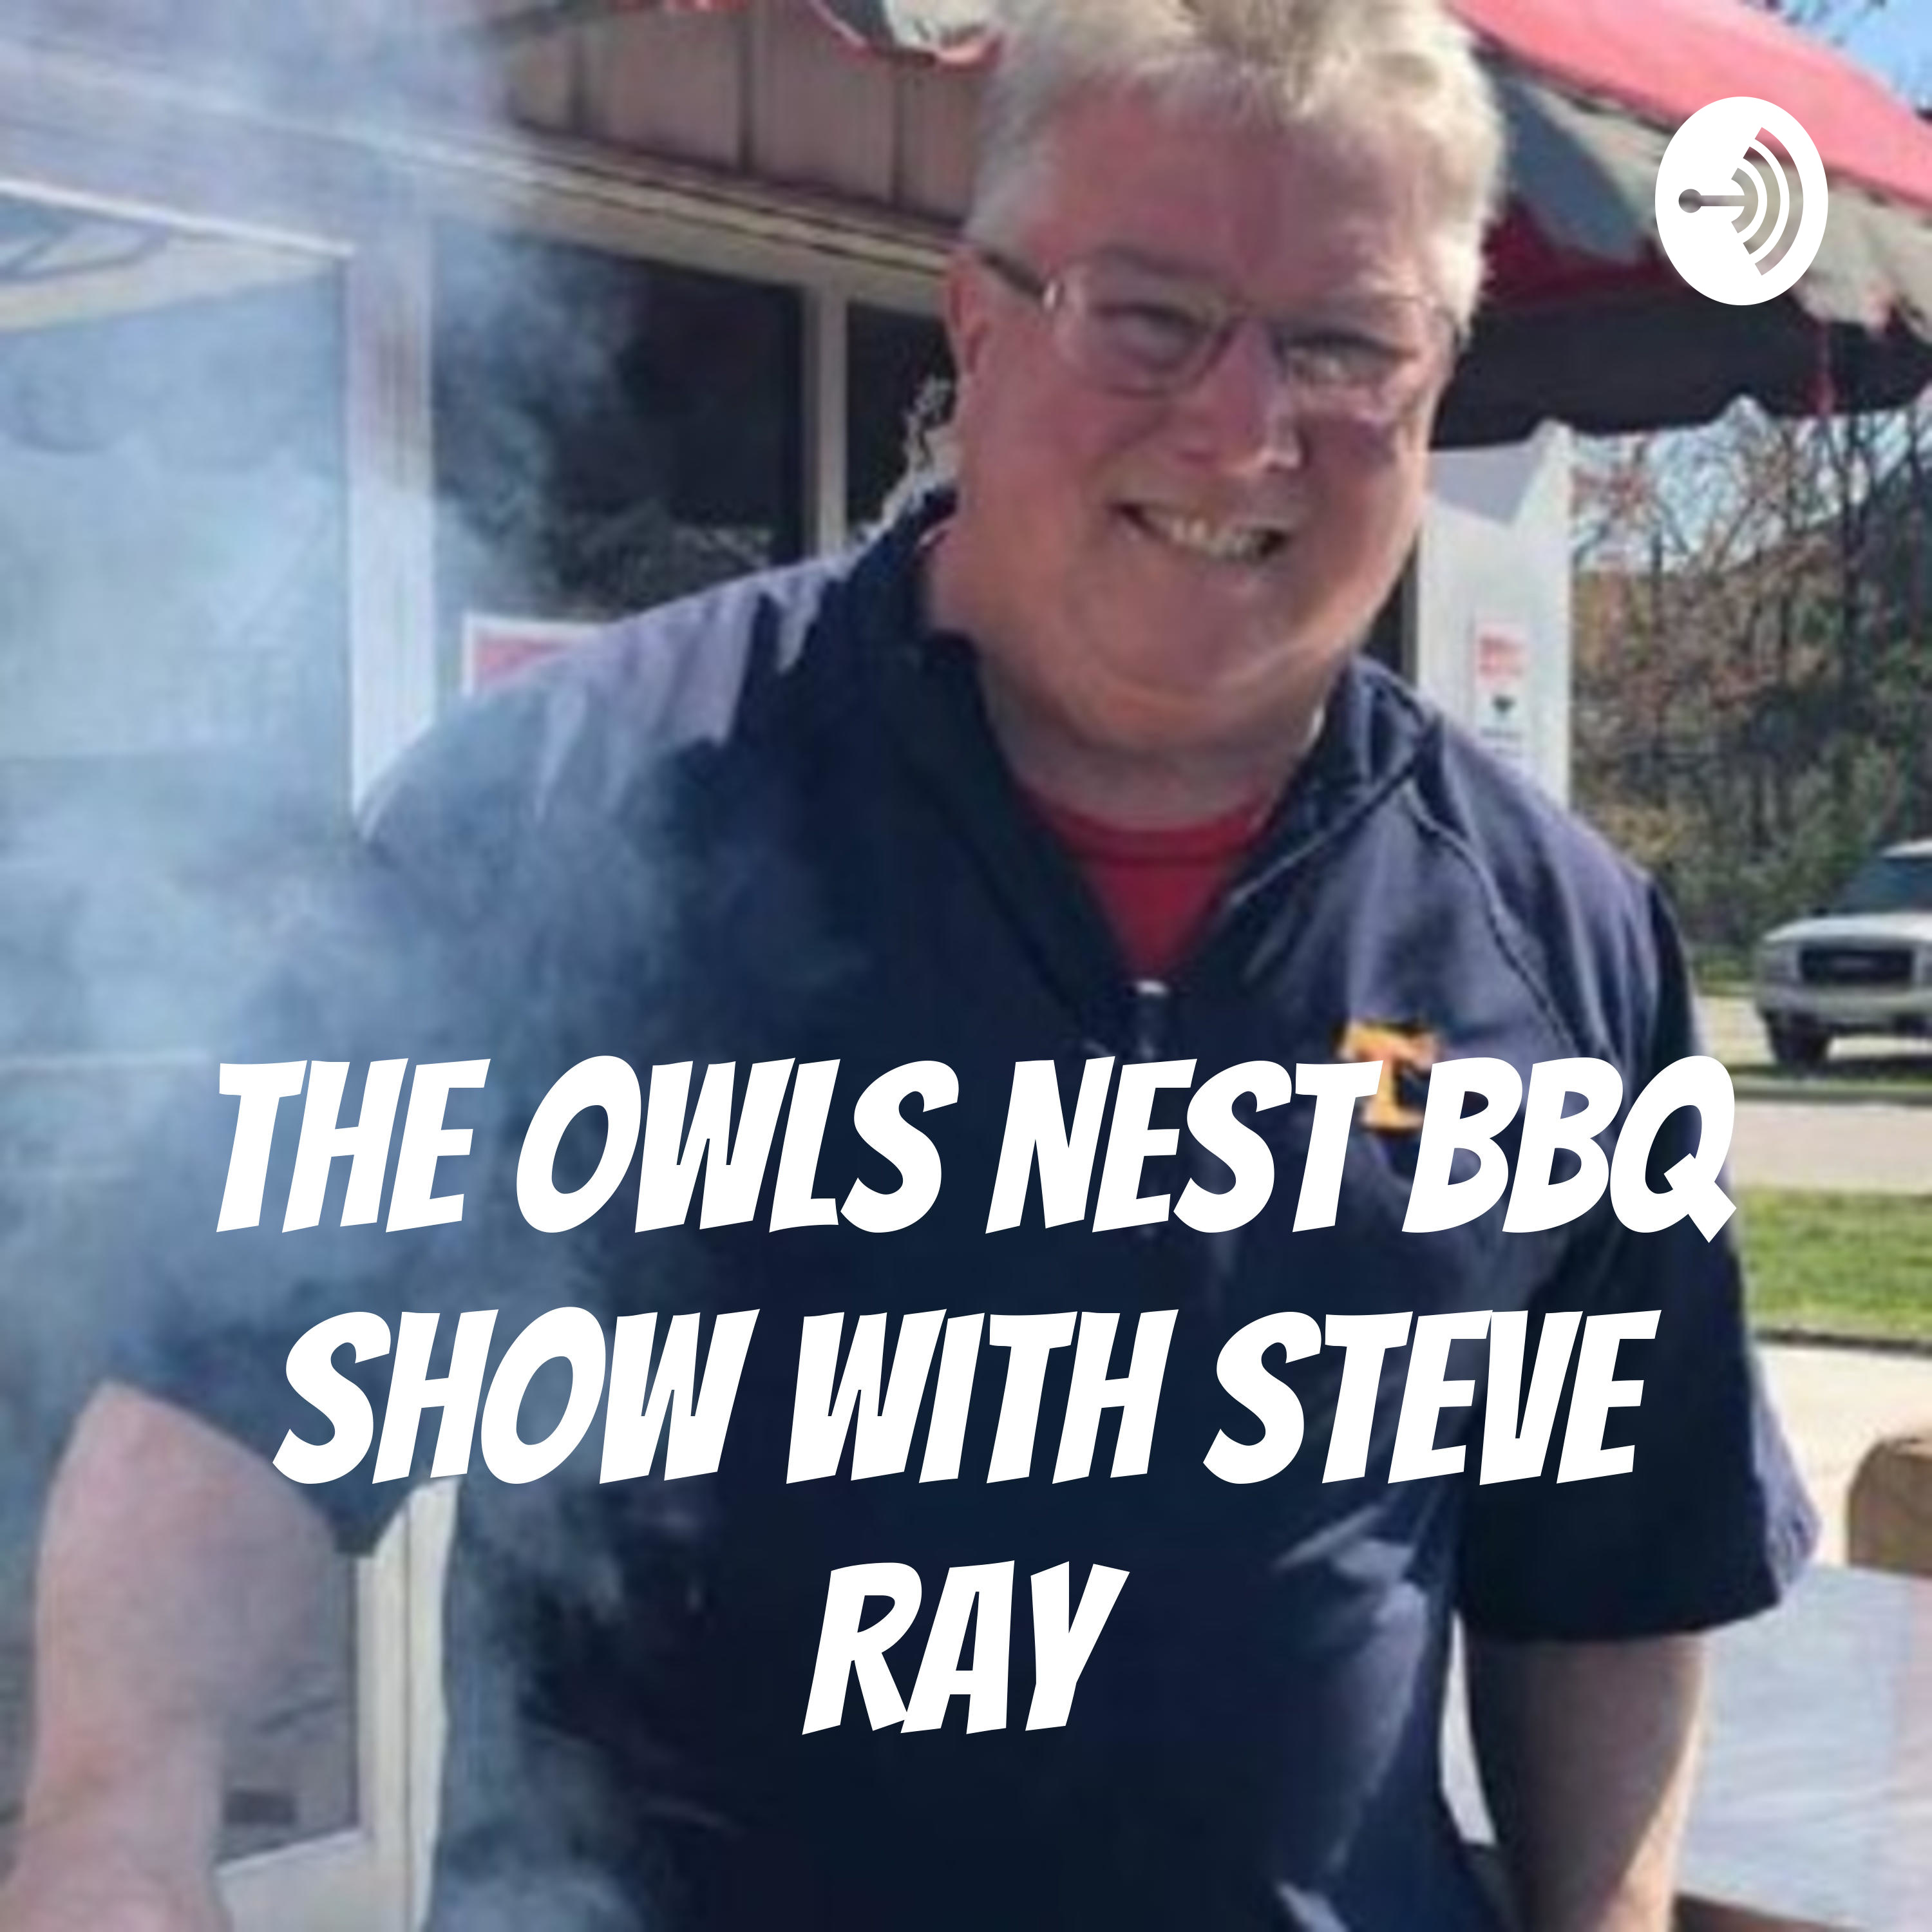 The Owls Nest BBQ Show with Steve Ray